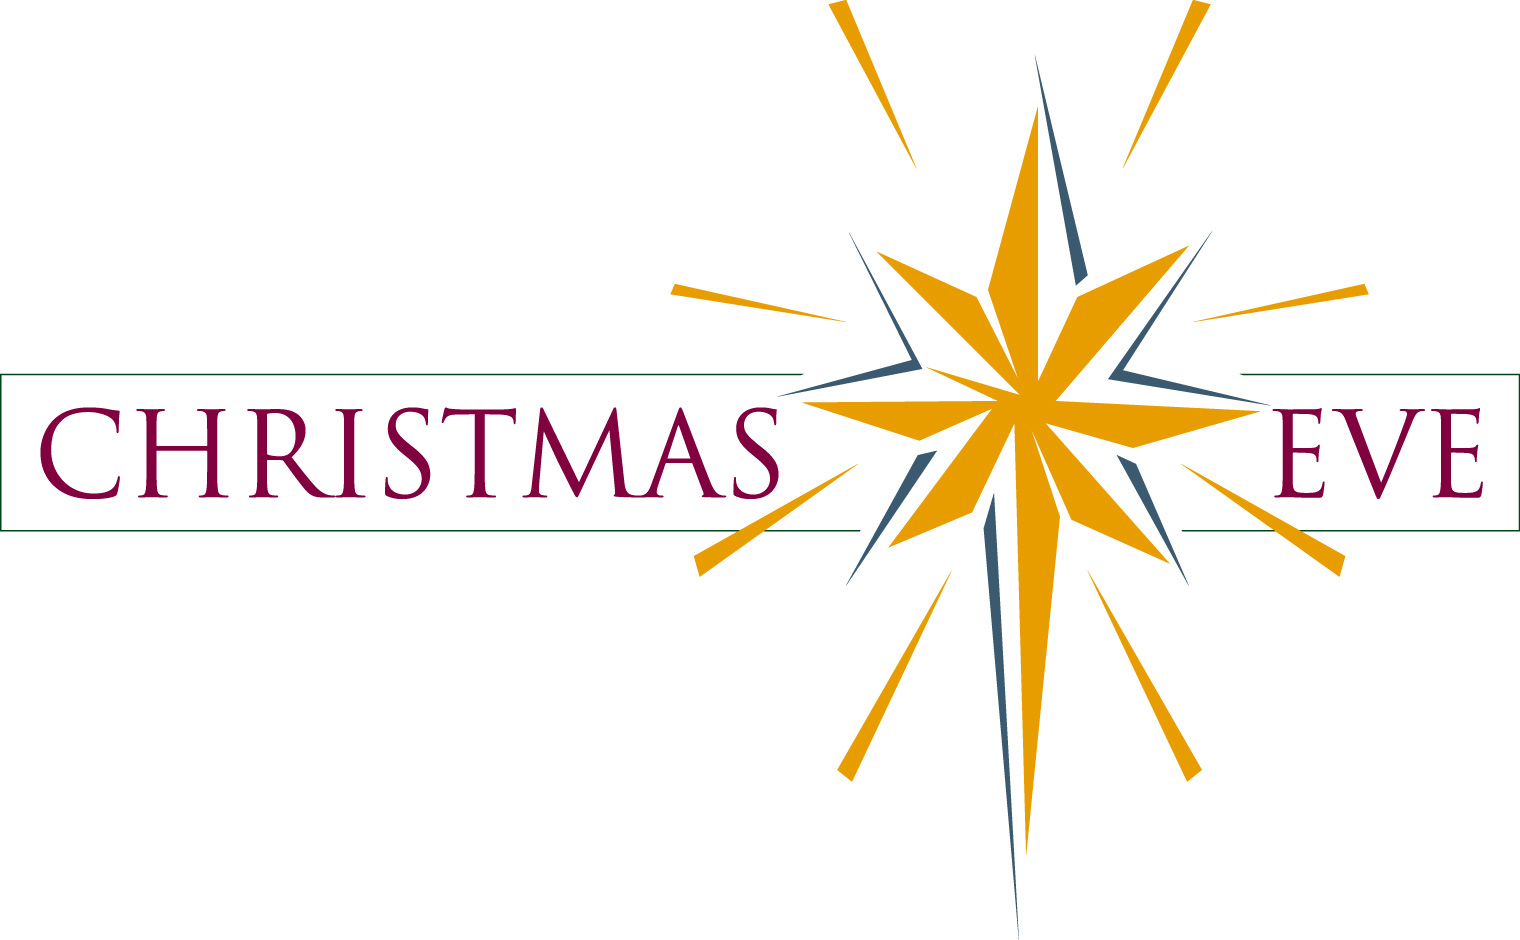 christmas eve service clipart - photo #8